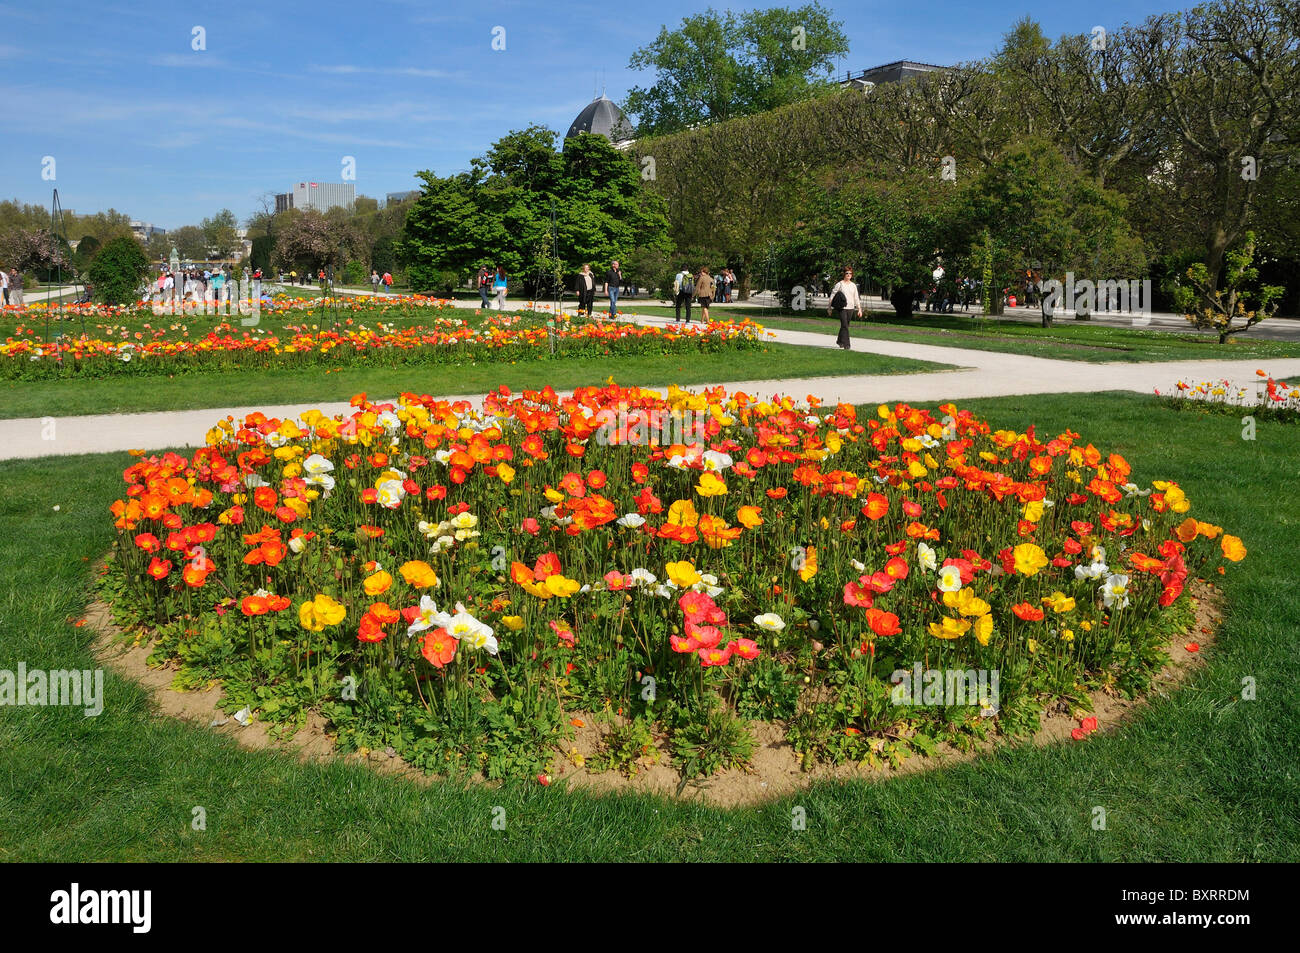 Jardin des plantes botanical garden paris le de france for Paris jardin plantes